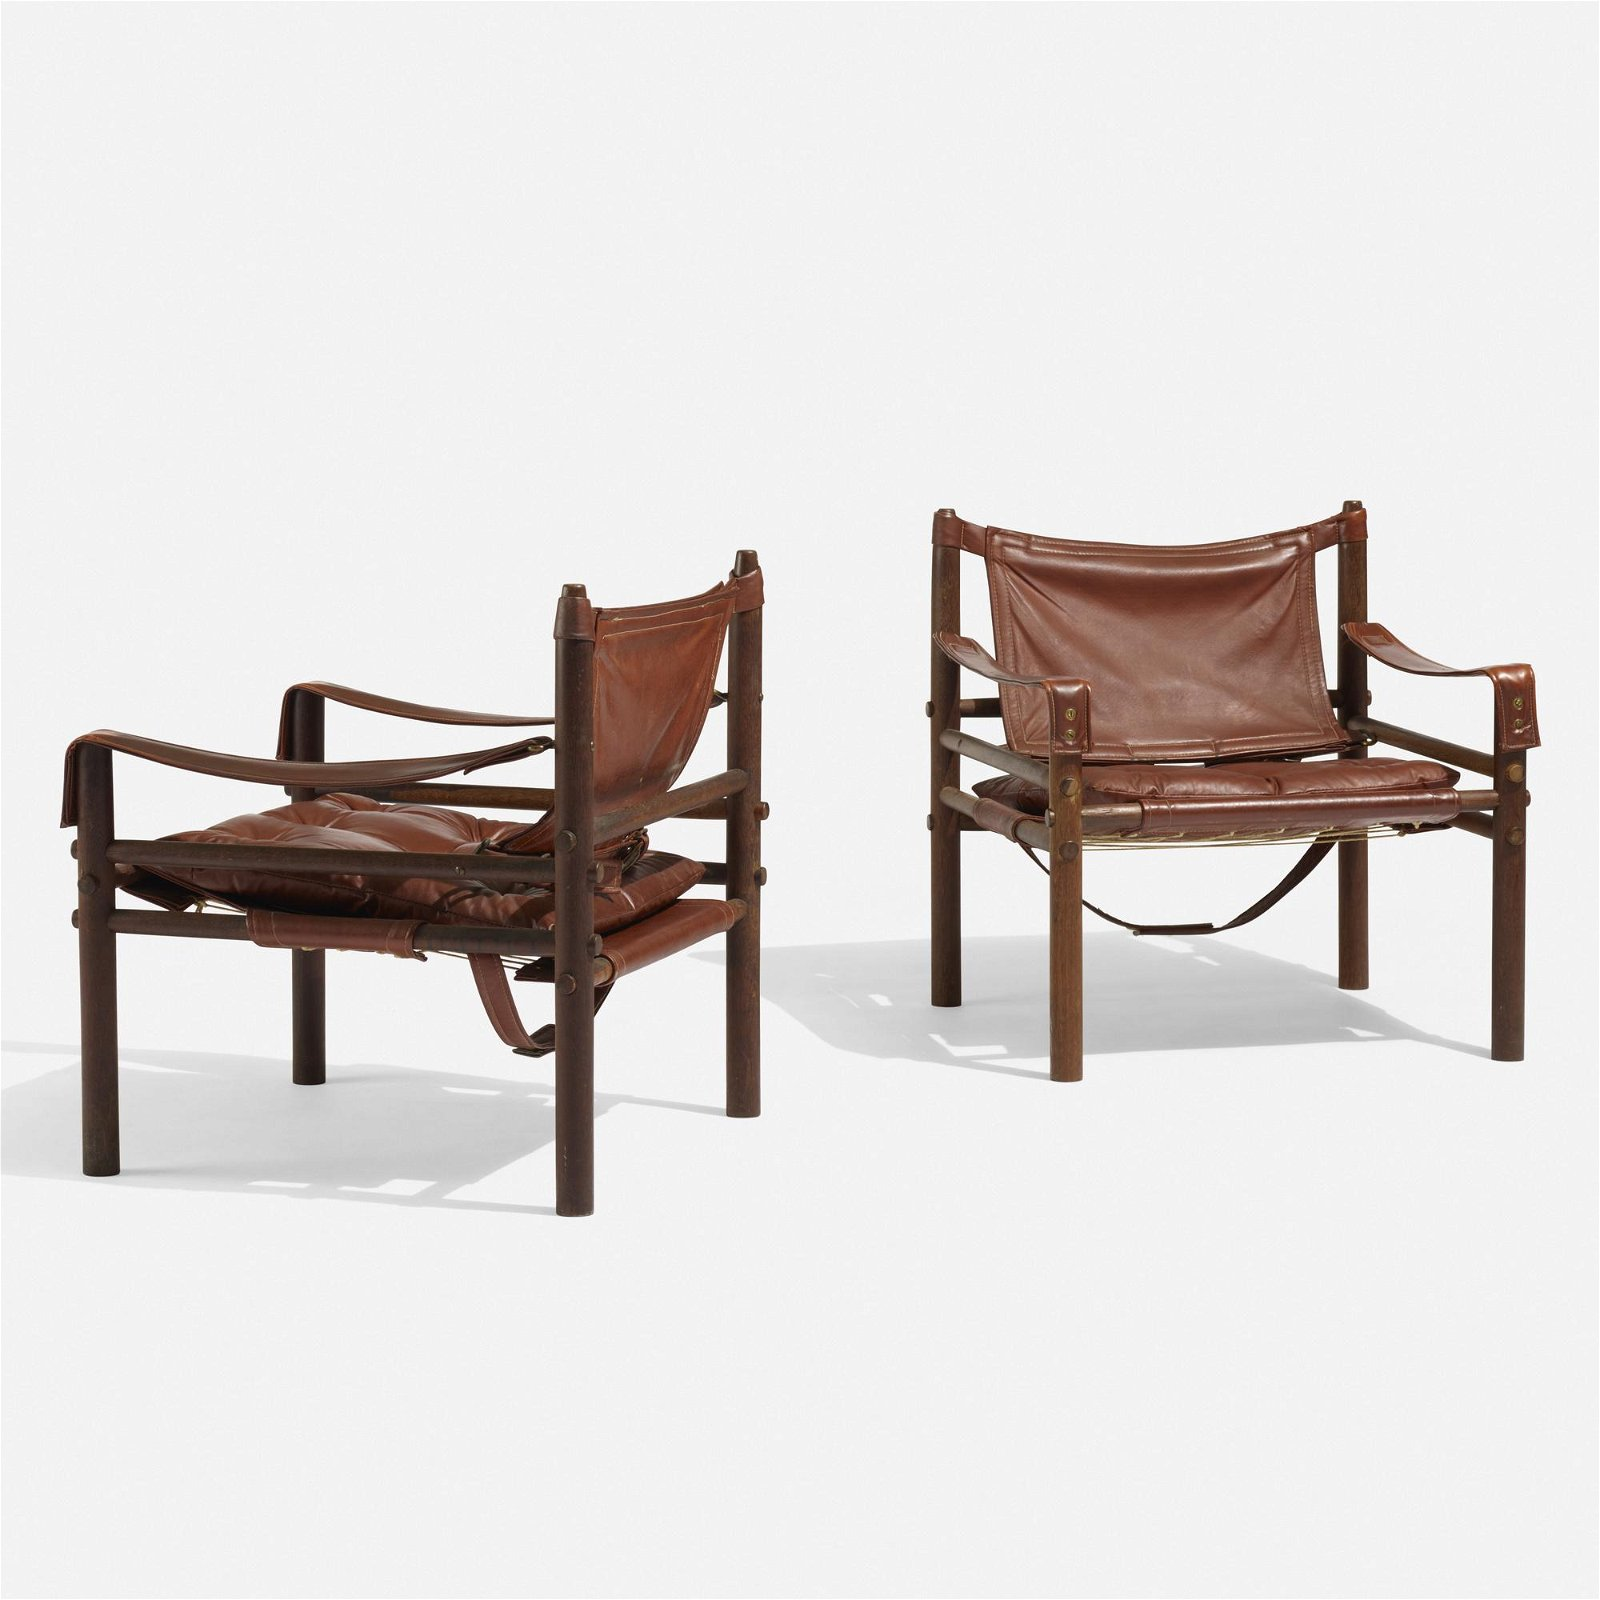 Arne Norell, Sirocco Safari lounge chairs, pair